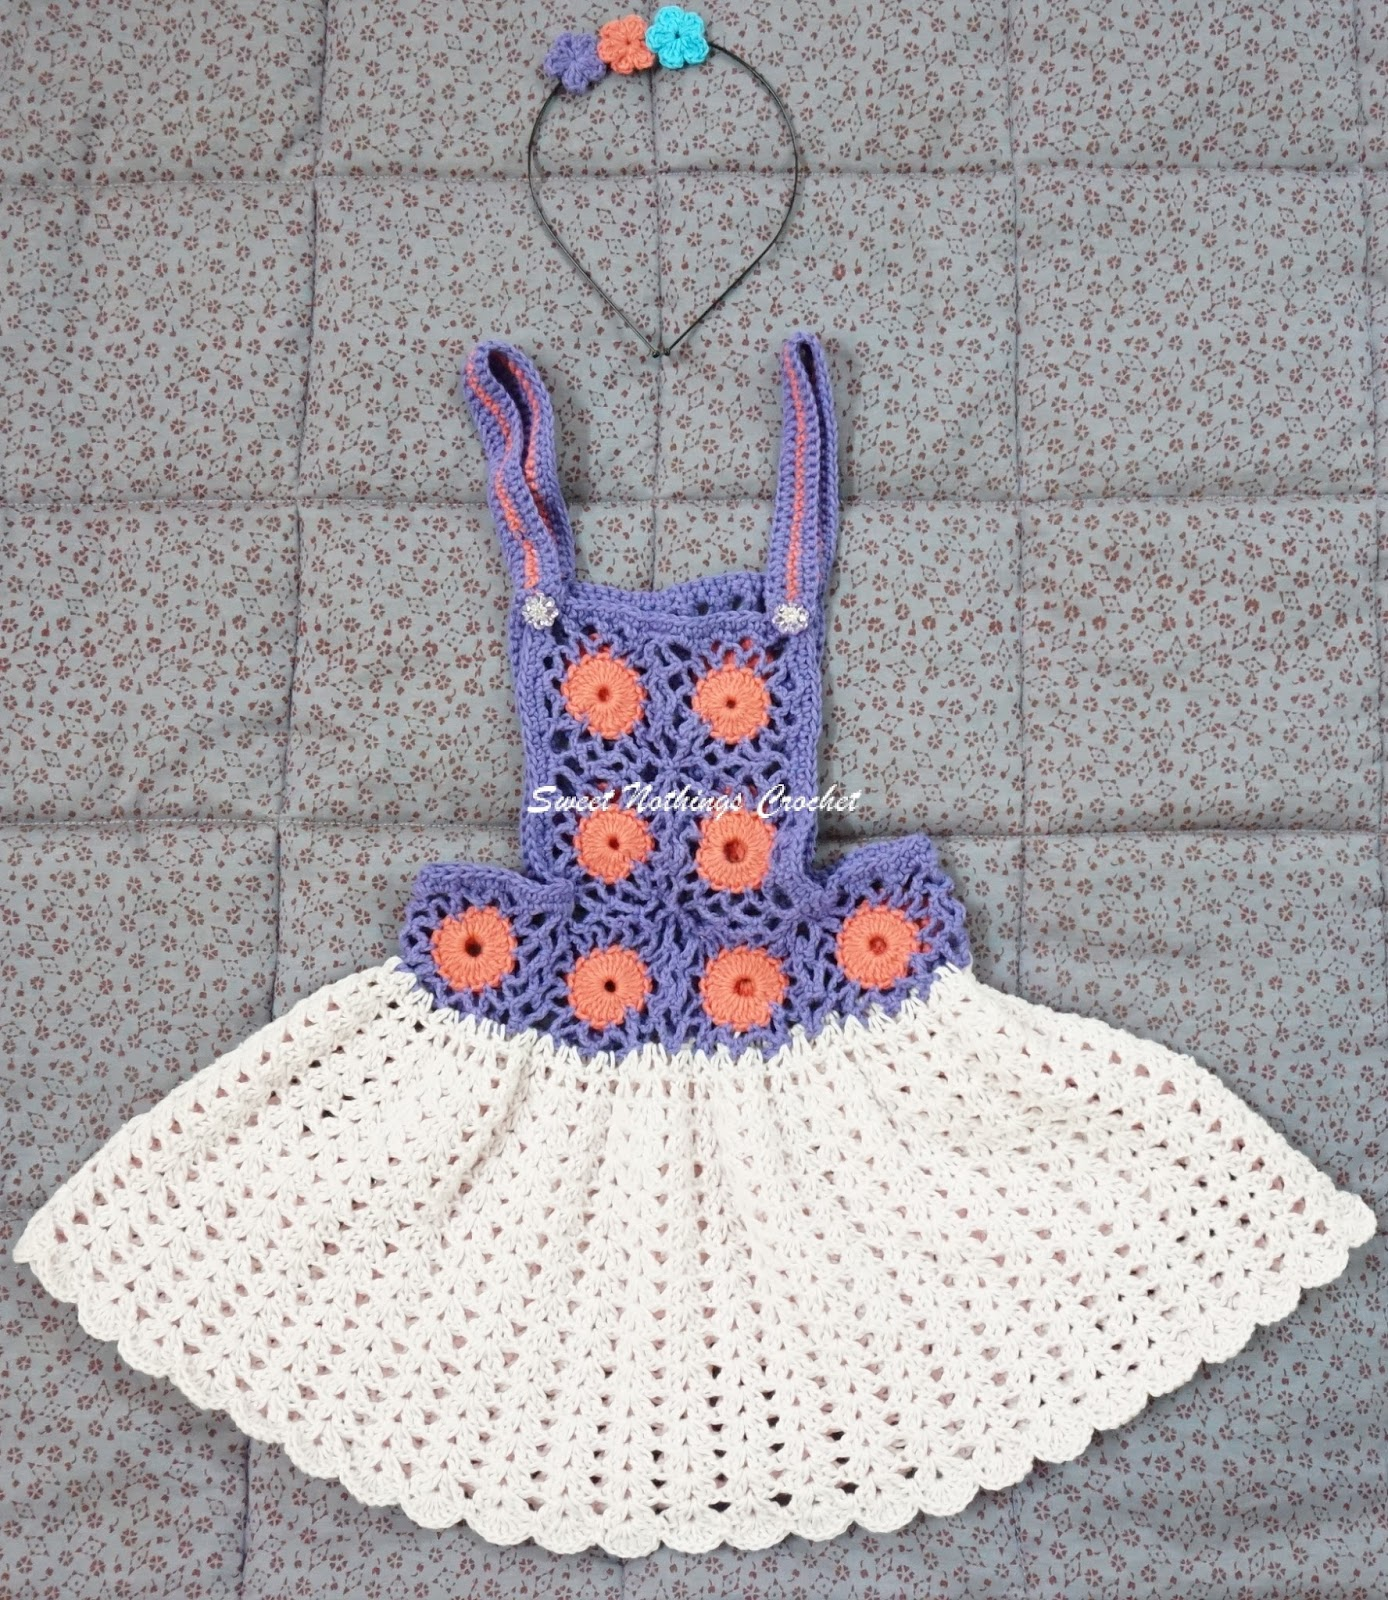 Sweet Nothings Crochet: PINAFORE BABY DRESS - 2 with matching headband